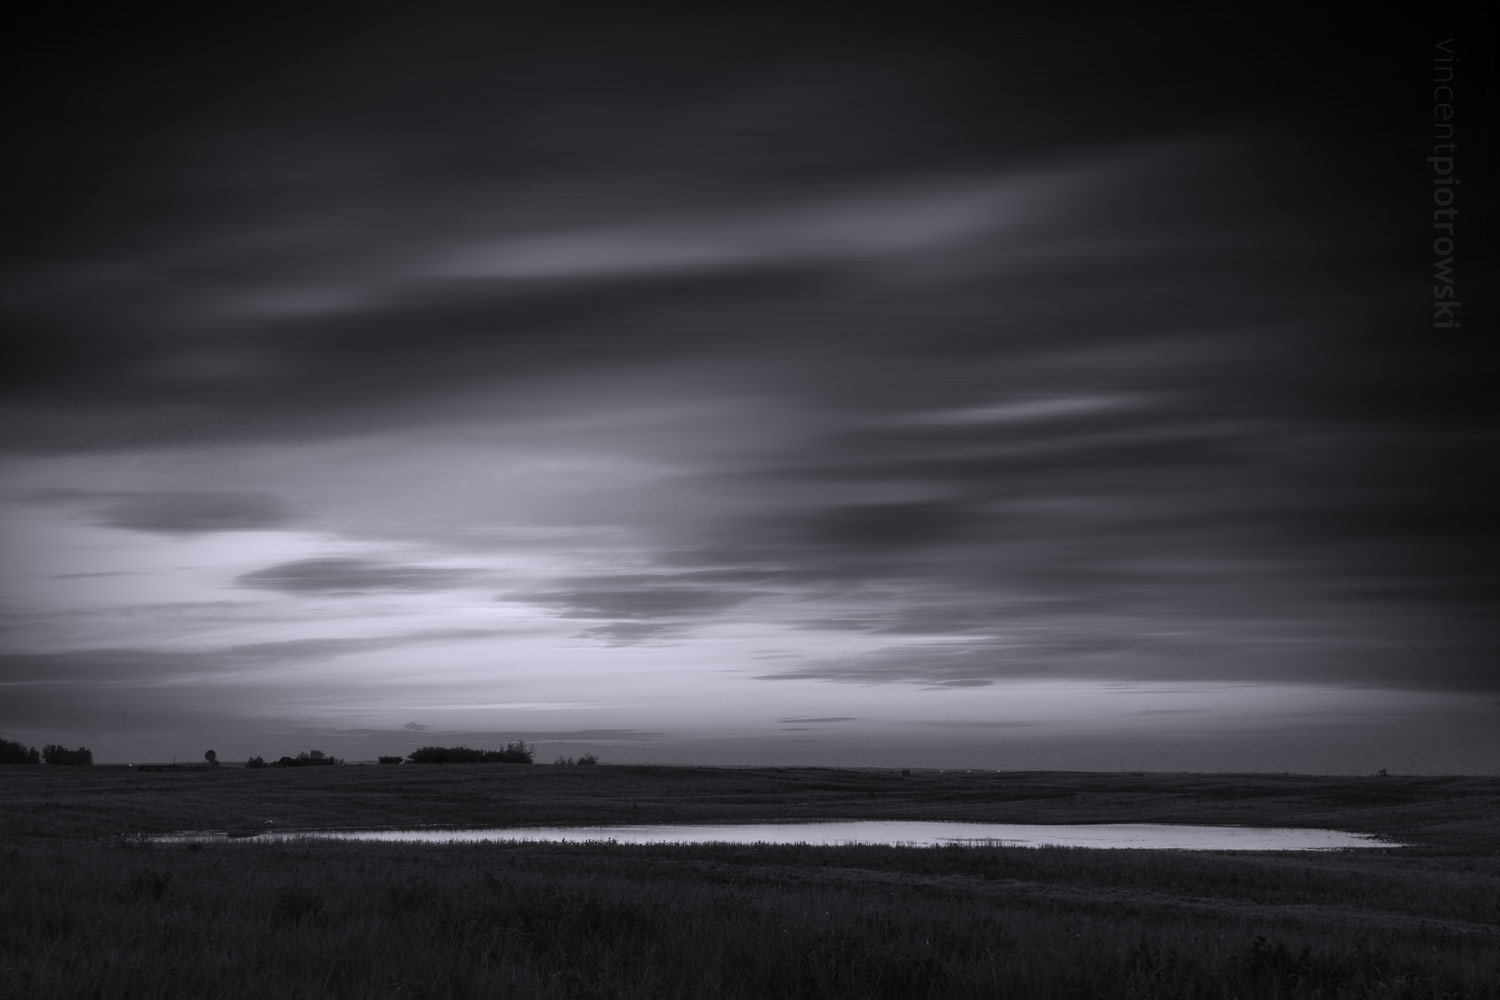 A longer exposure during a windy day on the prairies giving the photo an almost abstract feel